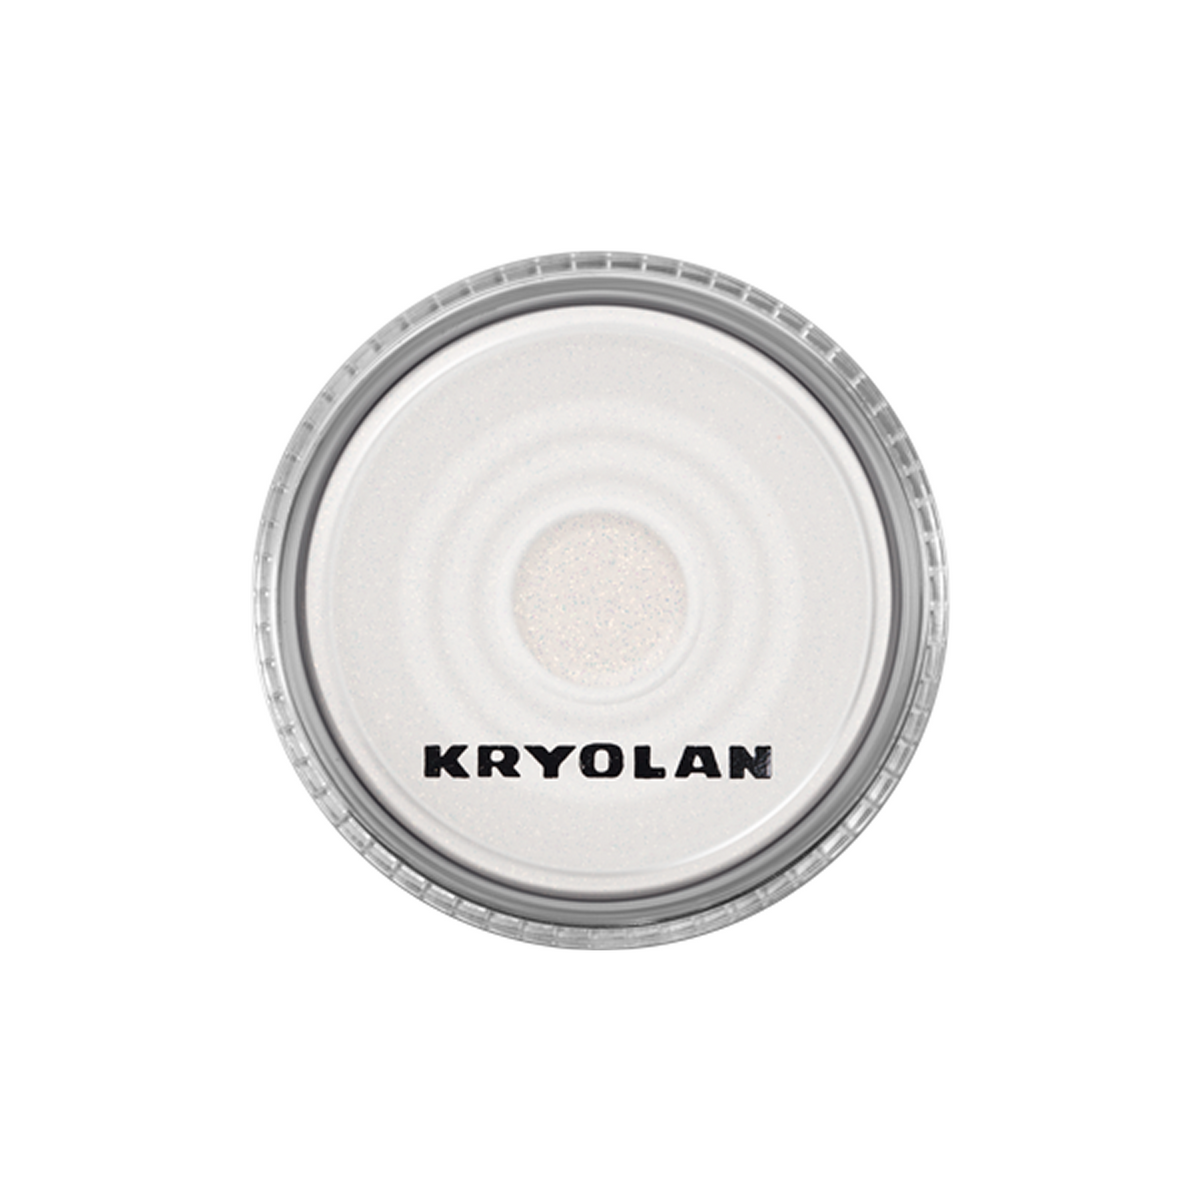 Kryolan Polyester Glimmer Medium Glitter - Pearl White - Red Carpet FX - Professional Makeup